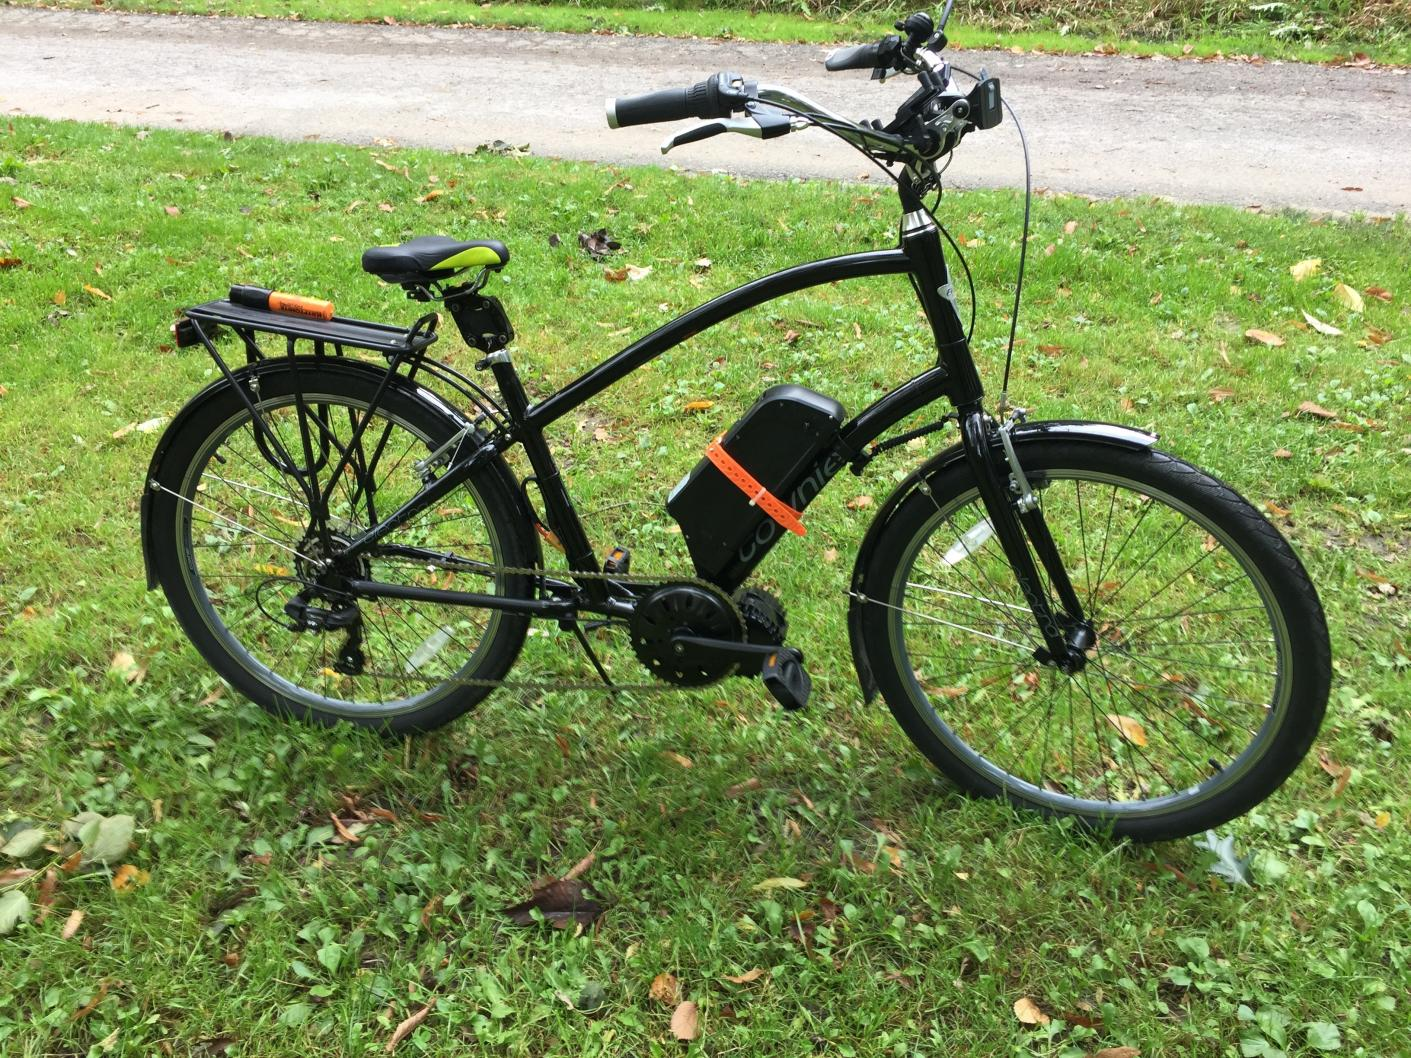 E Bike Conversion For Dummies Electra Townie With Luna